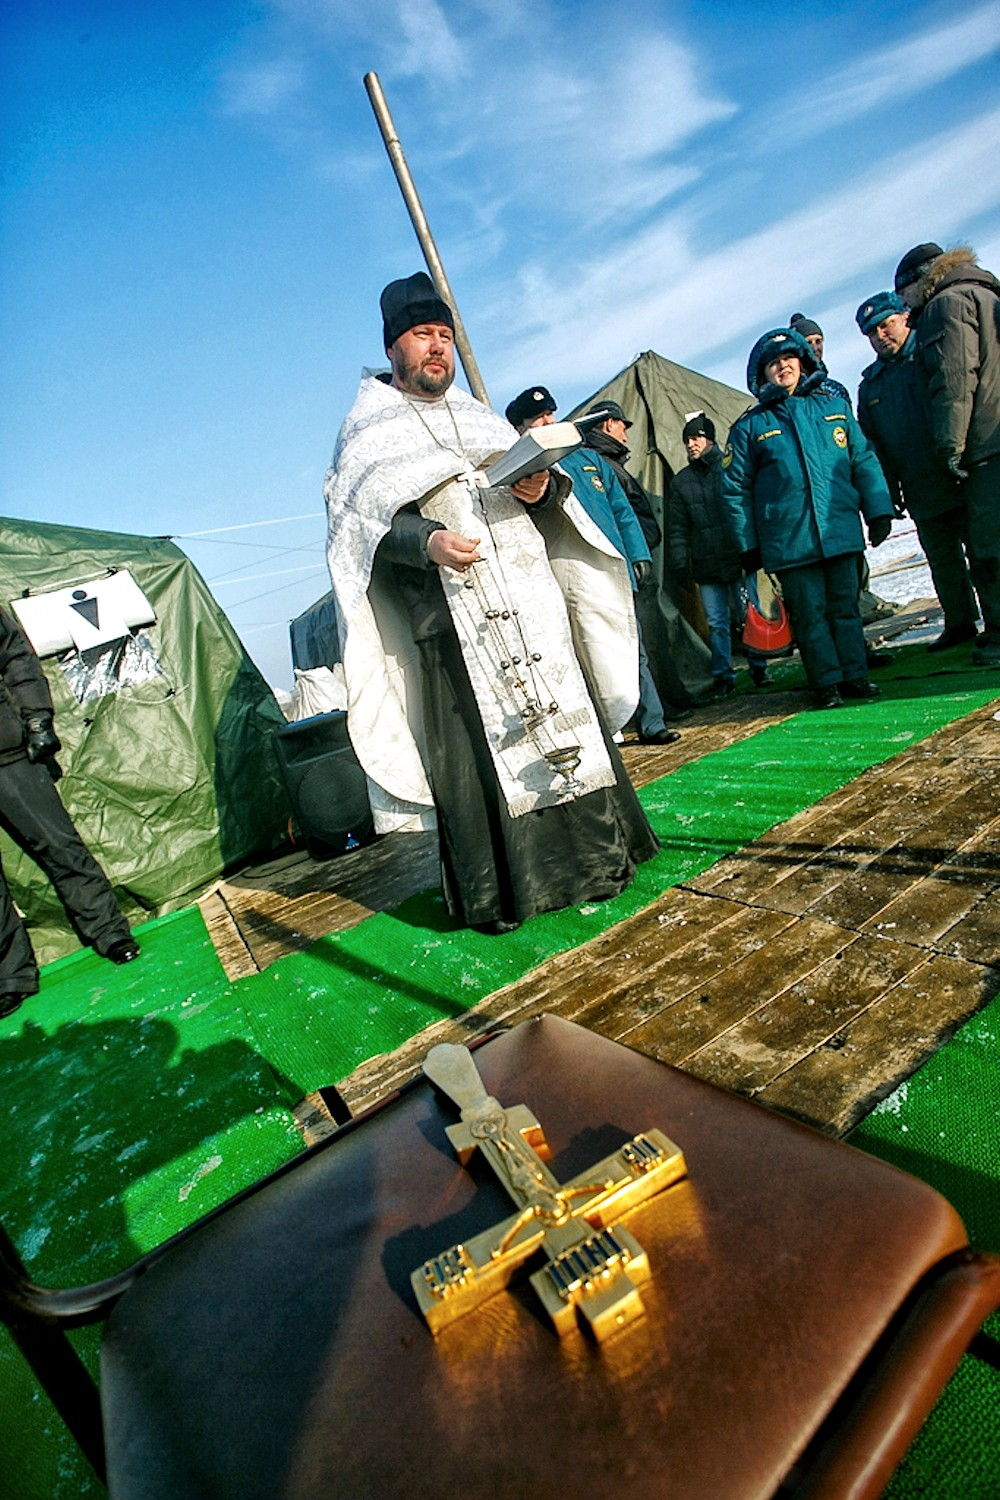 19 2014 a photo essay it was epiphany in the russian far epiphany 01 russia 19 01 14